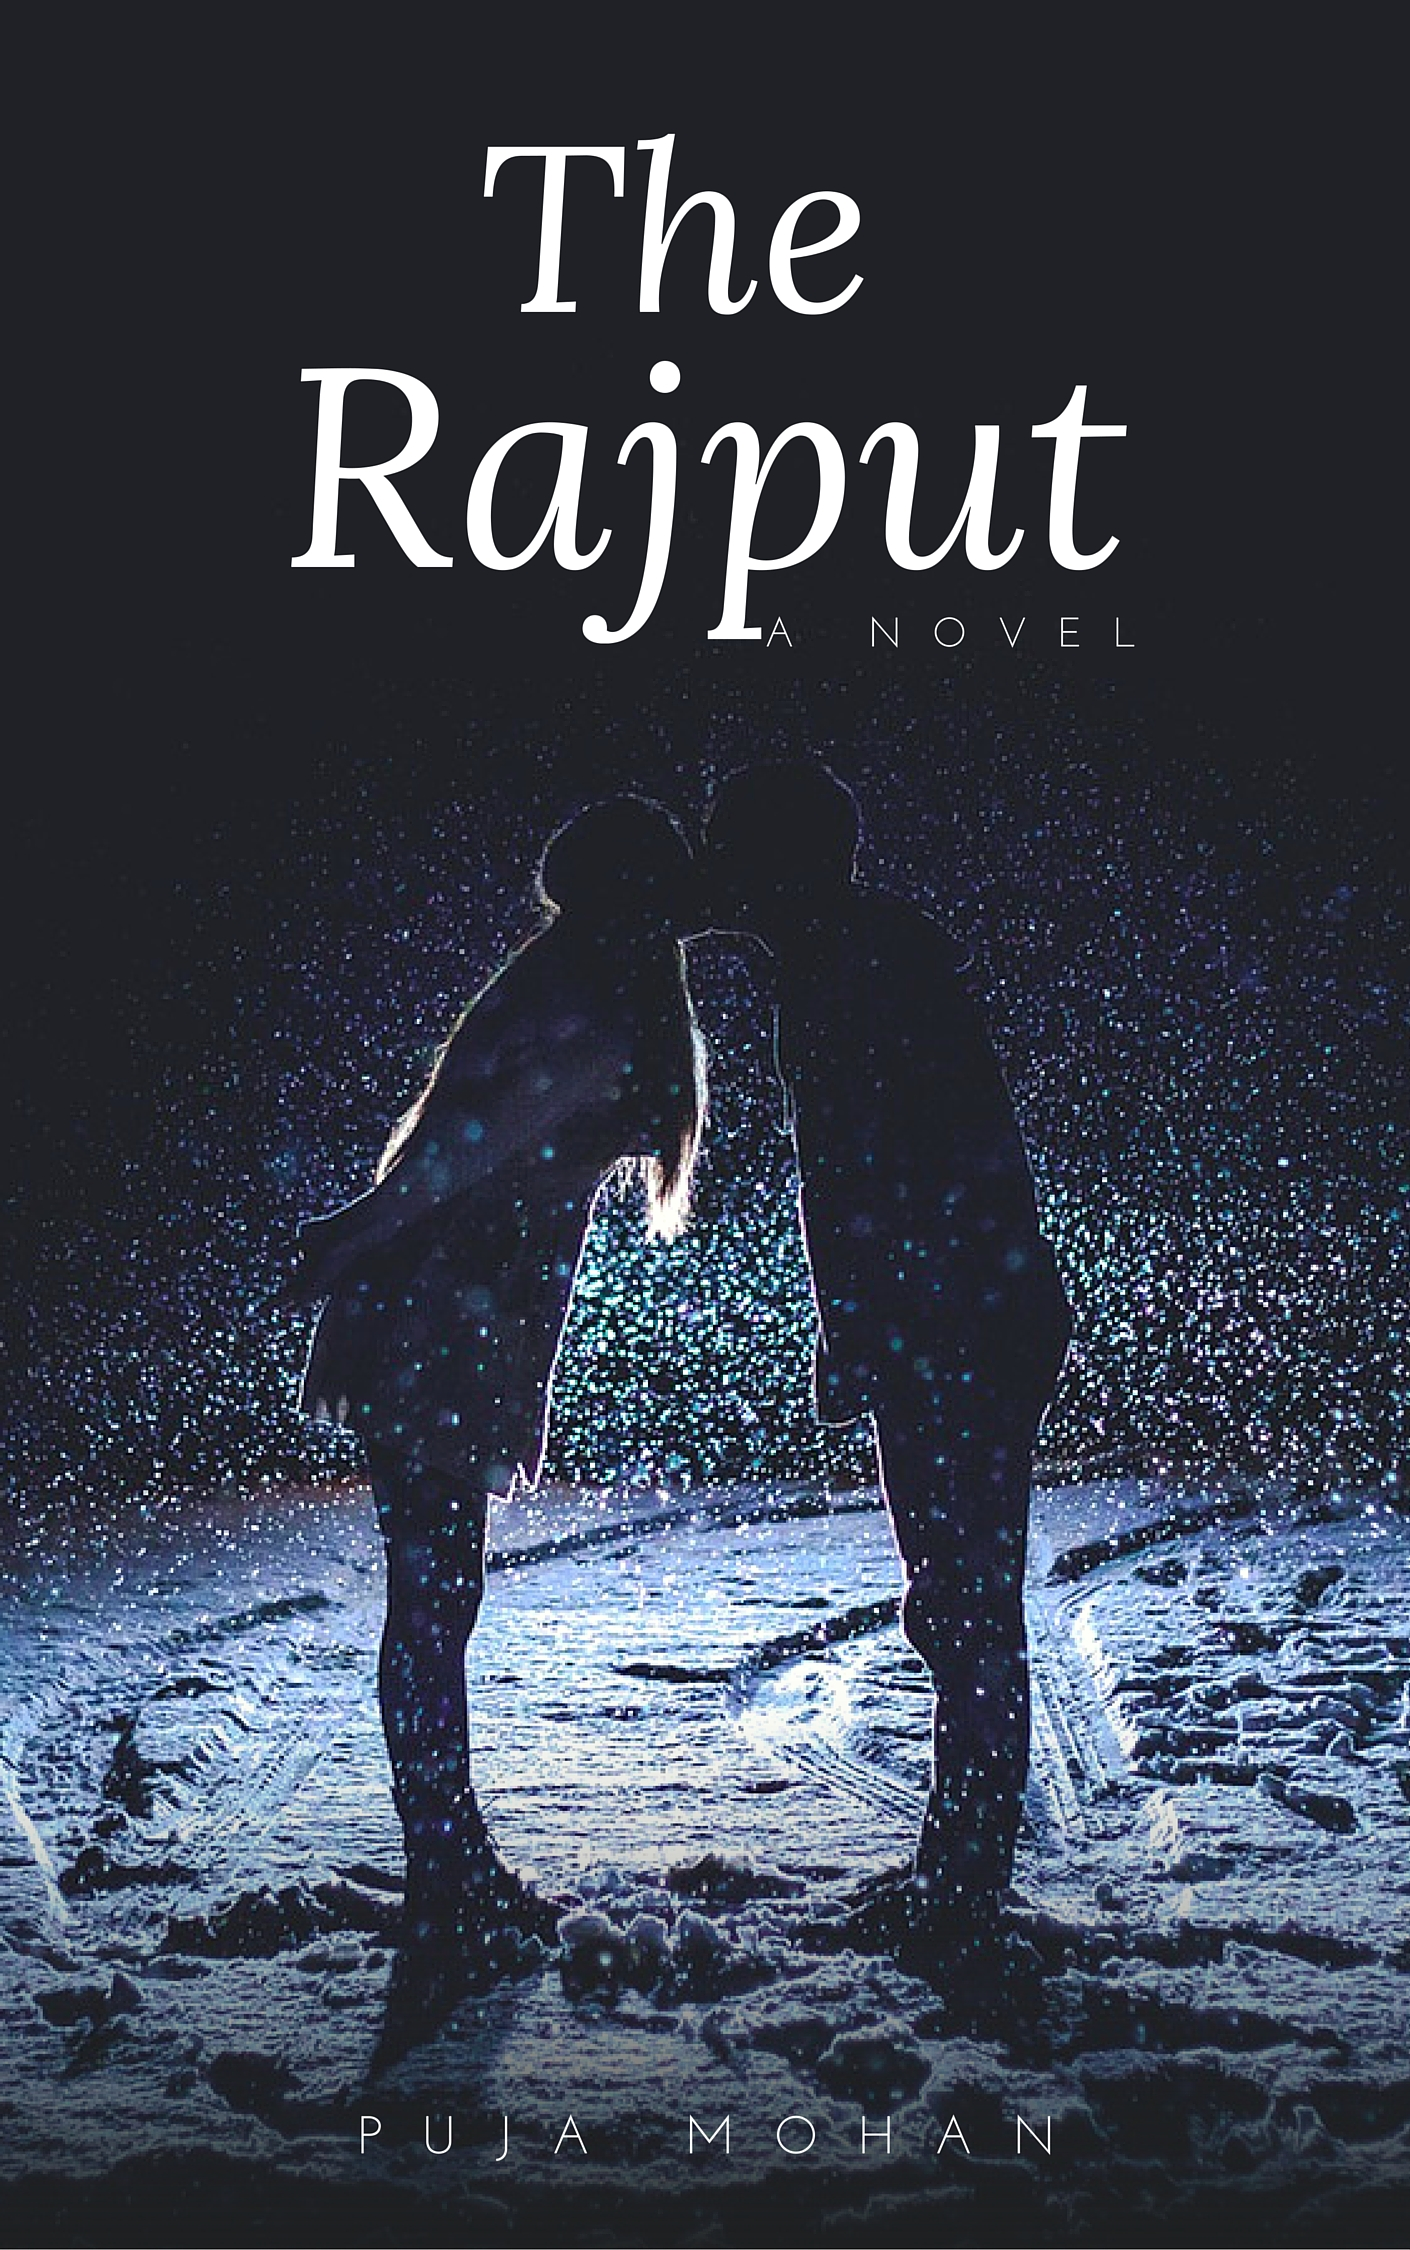 Ebook-Rajput.jpg